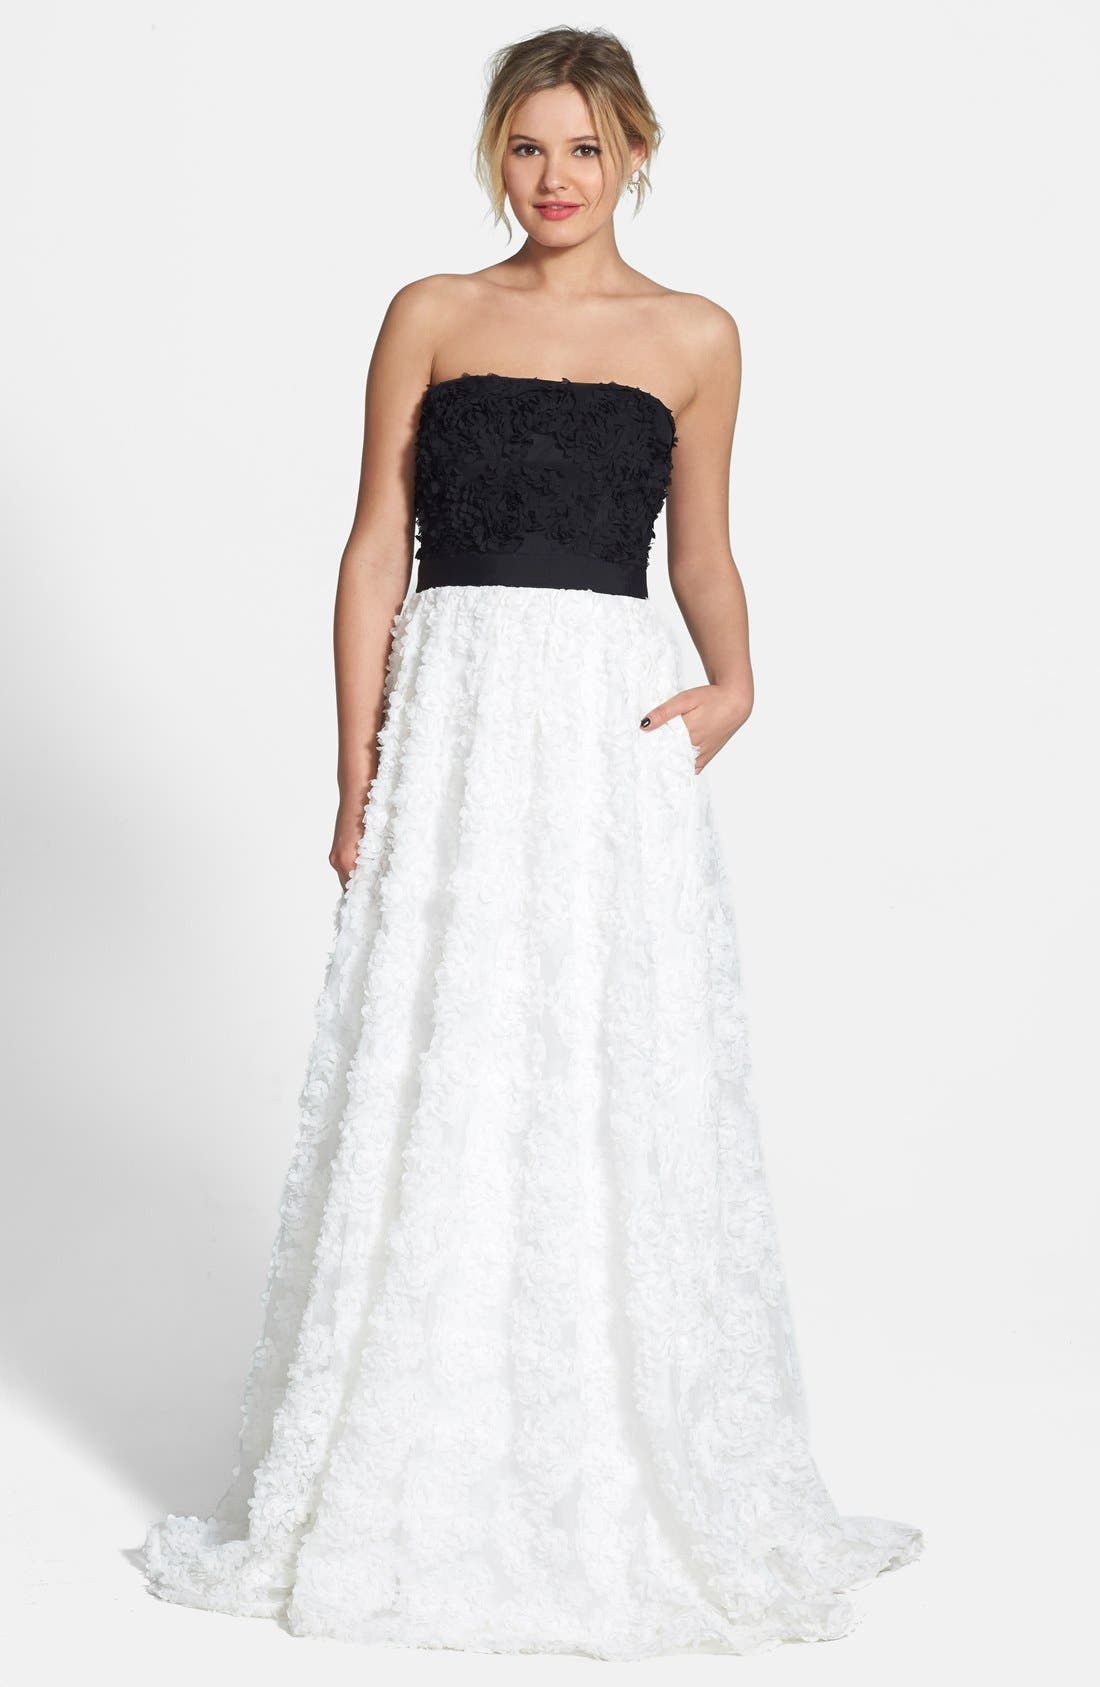 Alternate Image 1 Selected - Adrianna Papell Petal Appliqué Tulle Ballgown